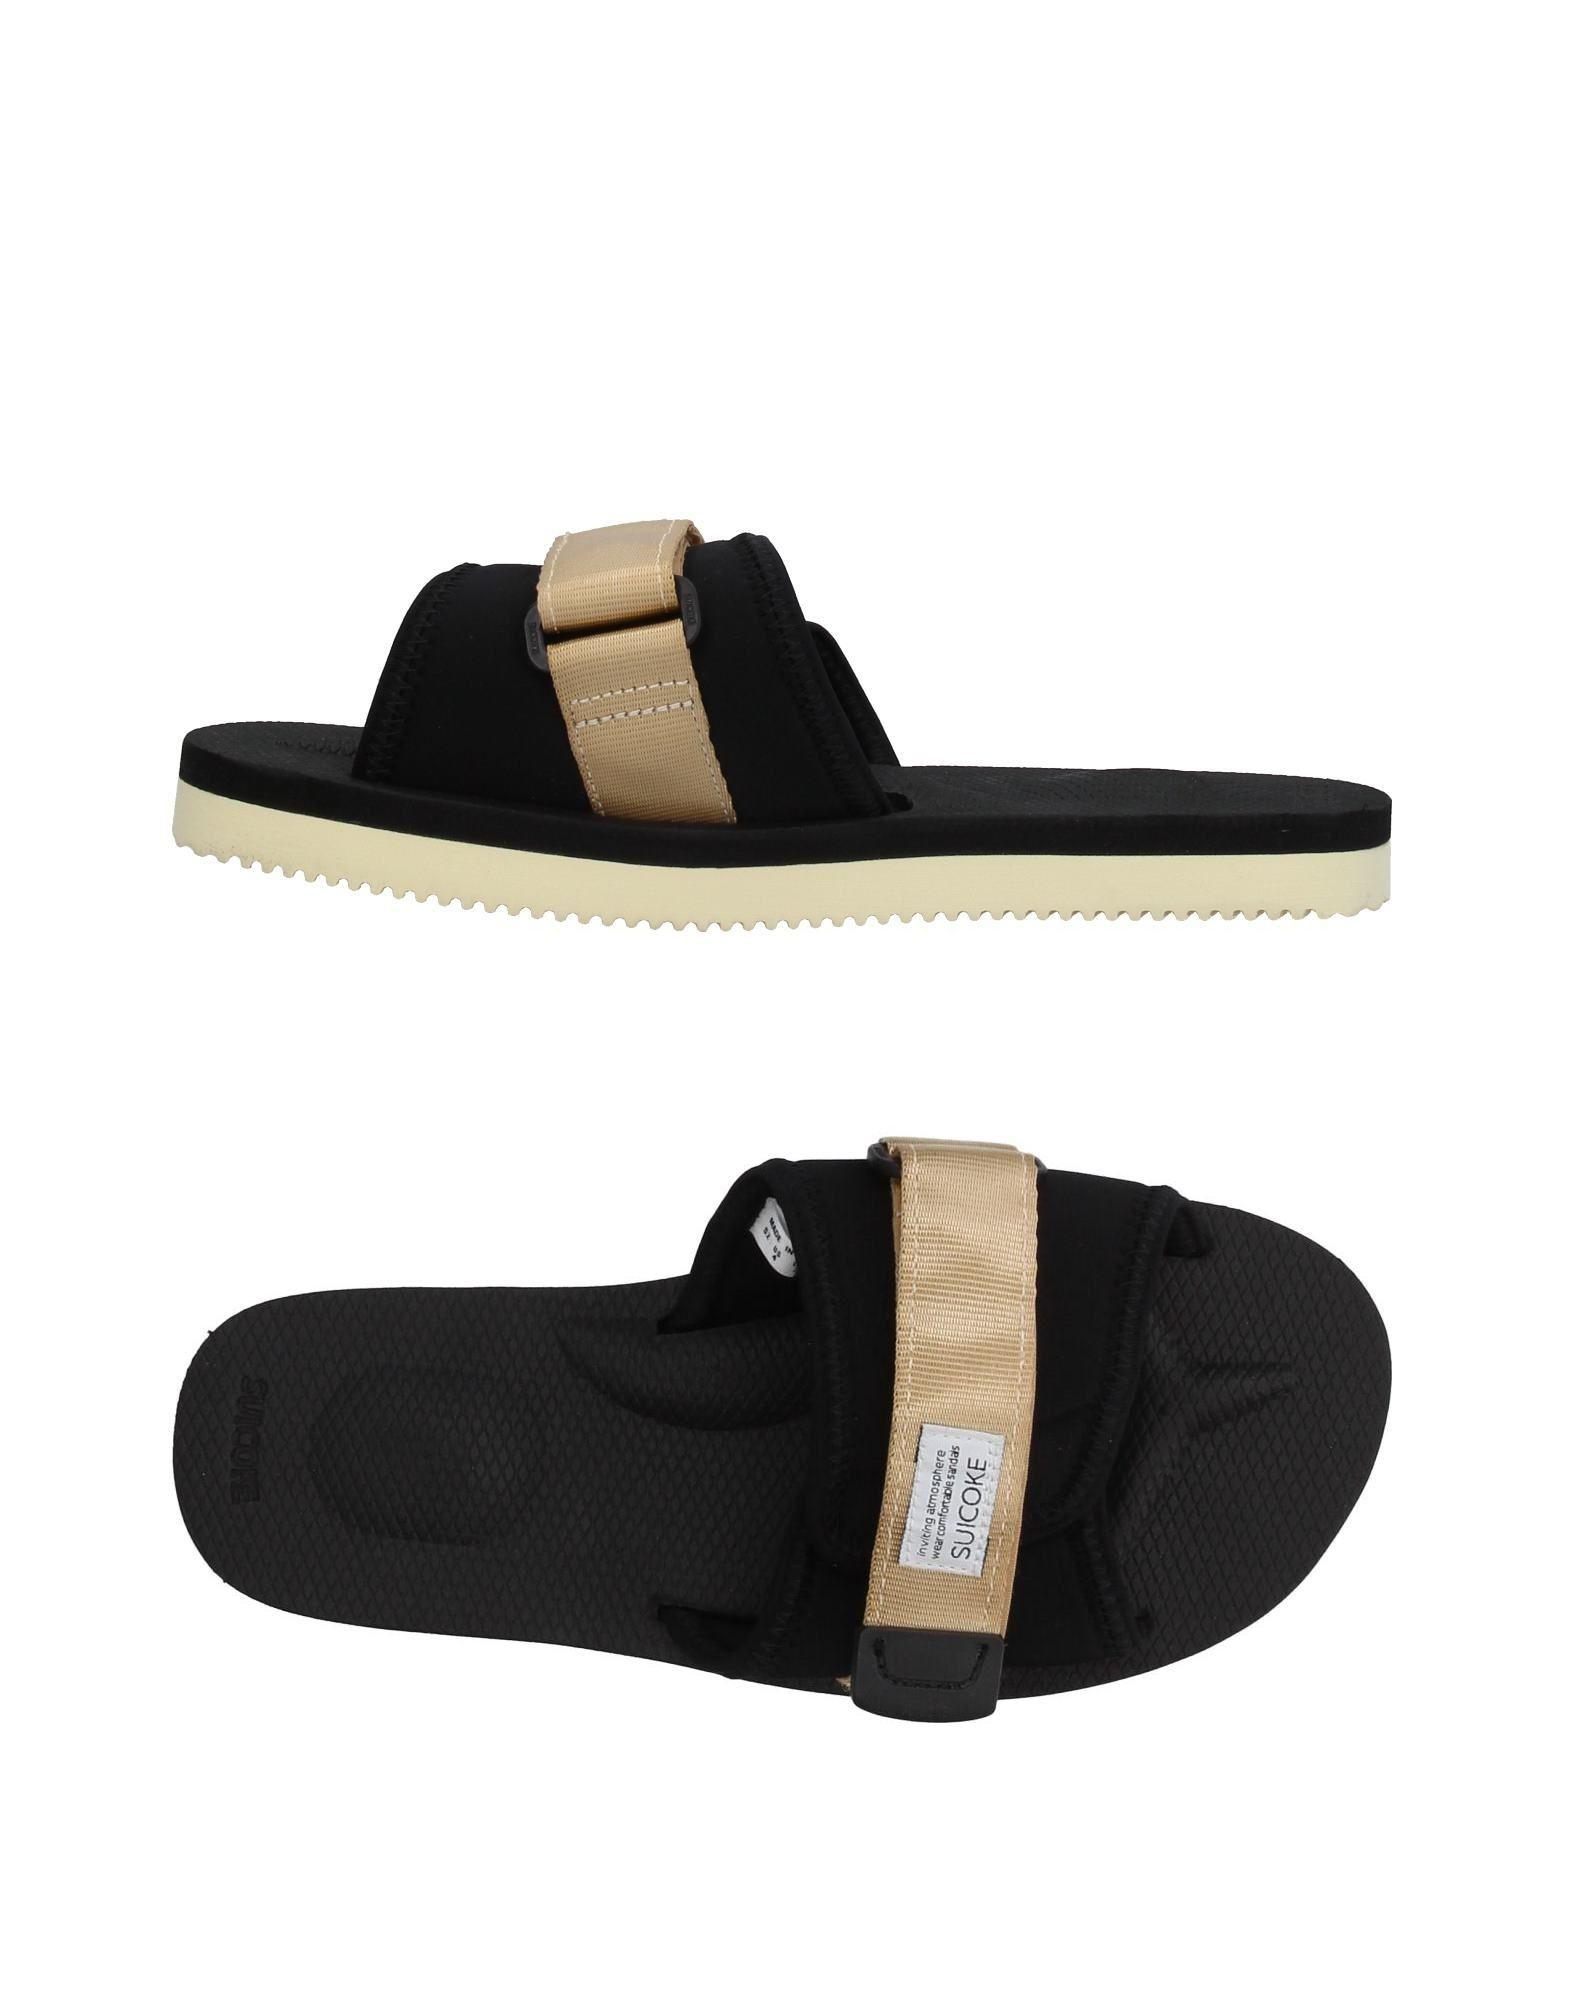 a7c2838eabb Lyst - Suicoke Sandals in Natural for Men